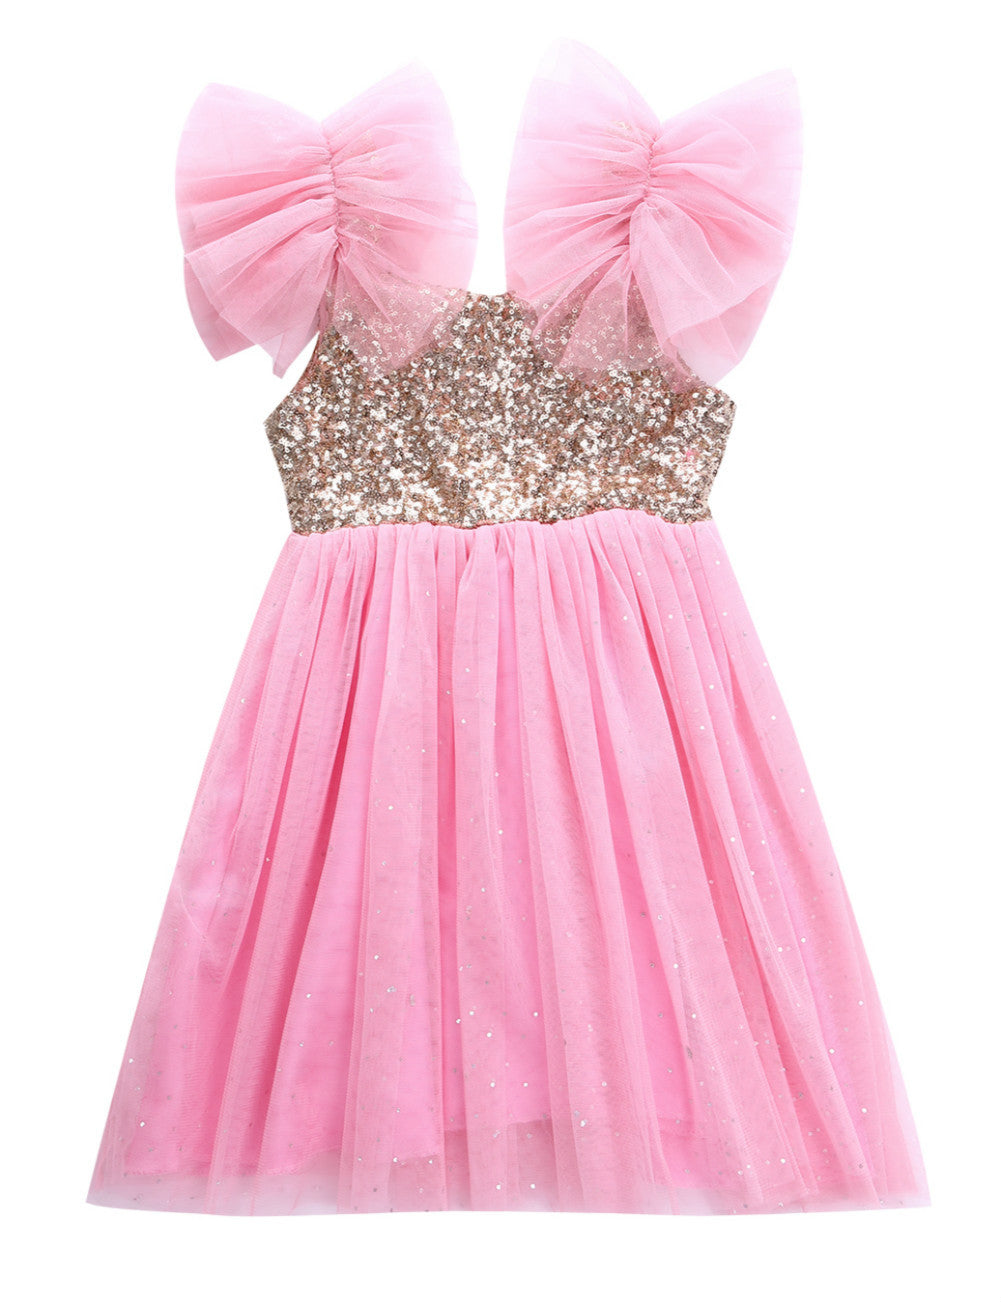 Sequins Pink Princess Dress with Bows